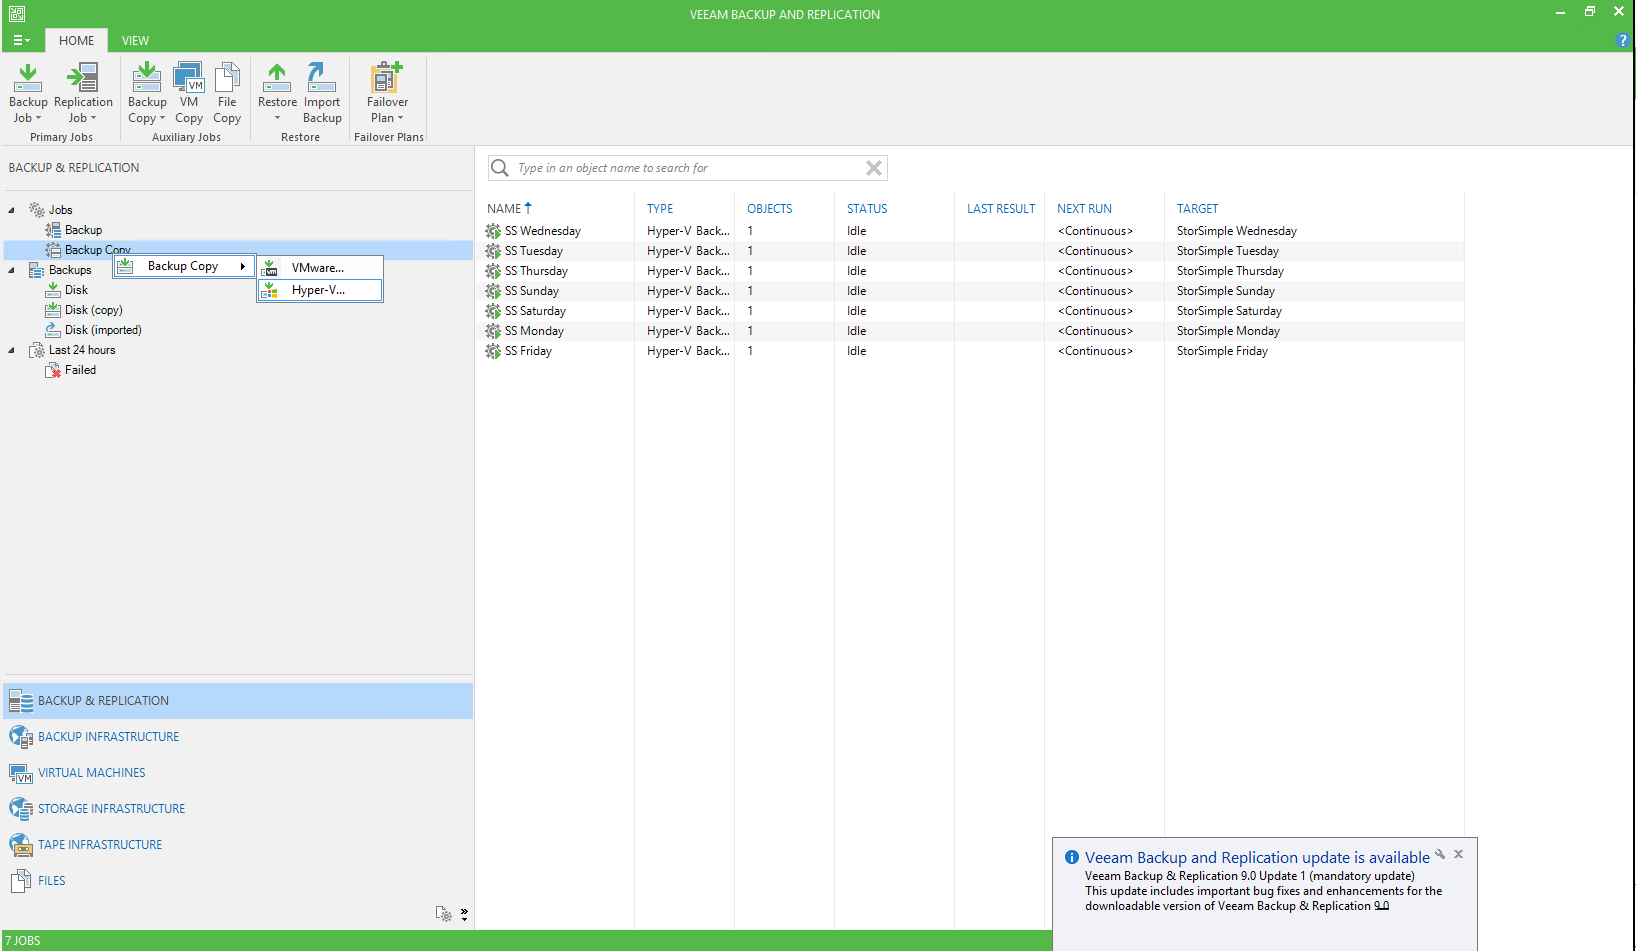 Validating task cannot process object veeam